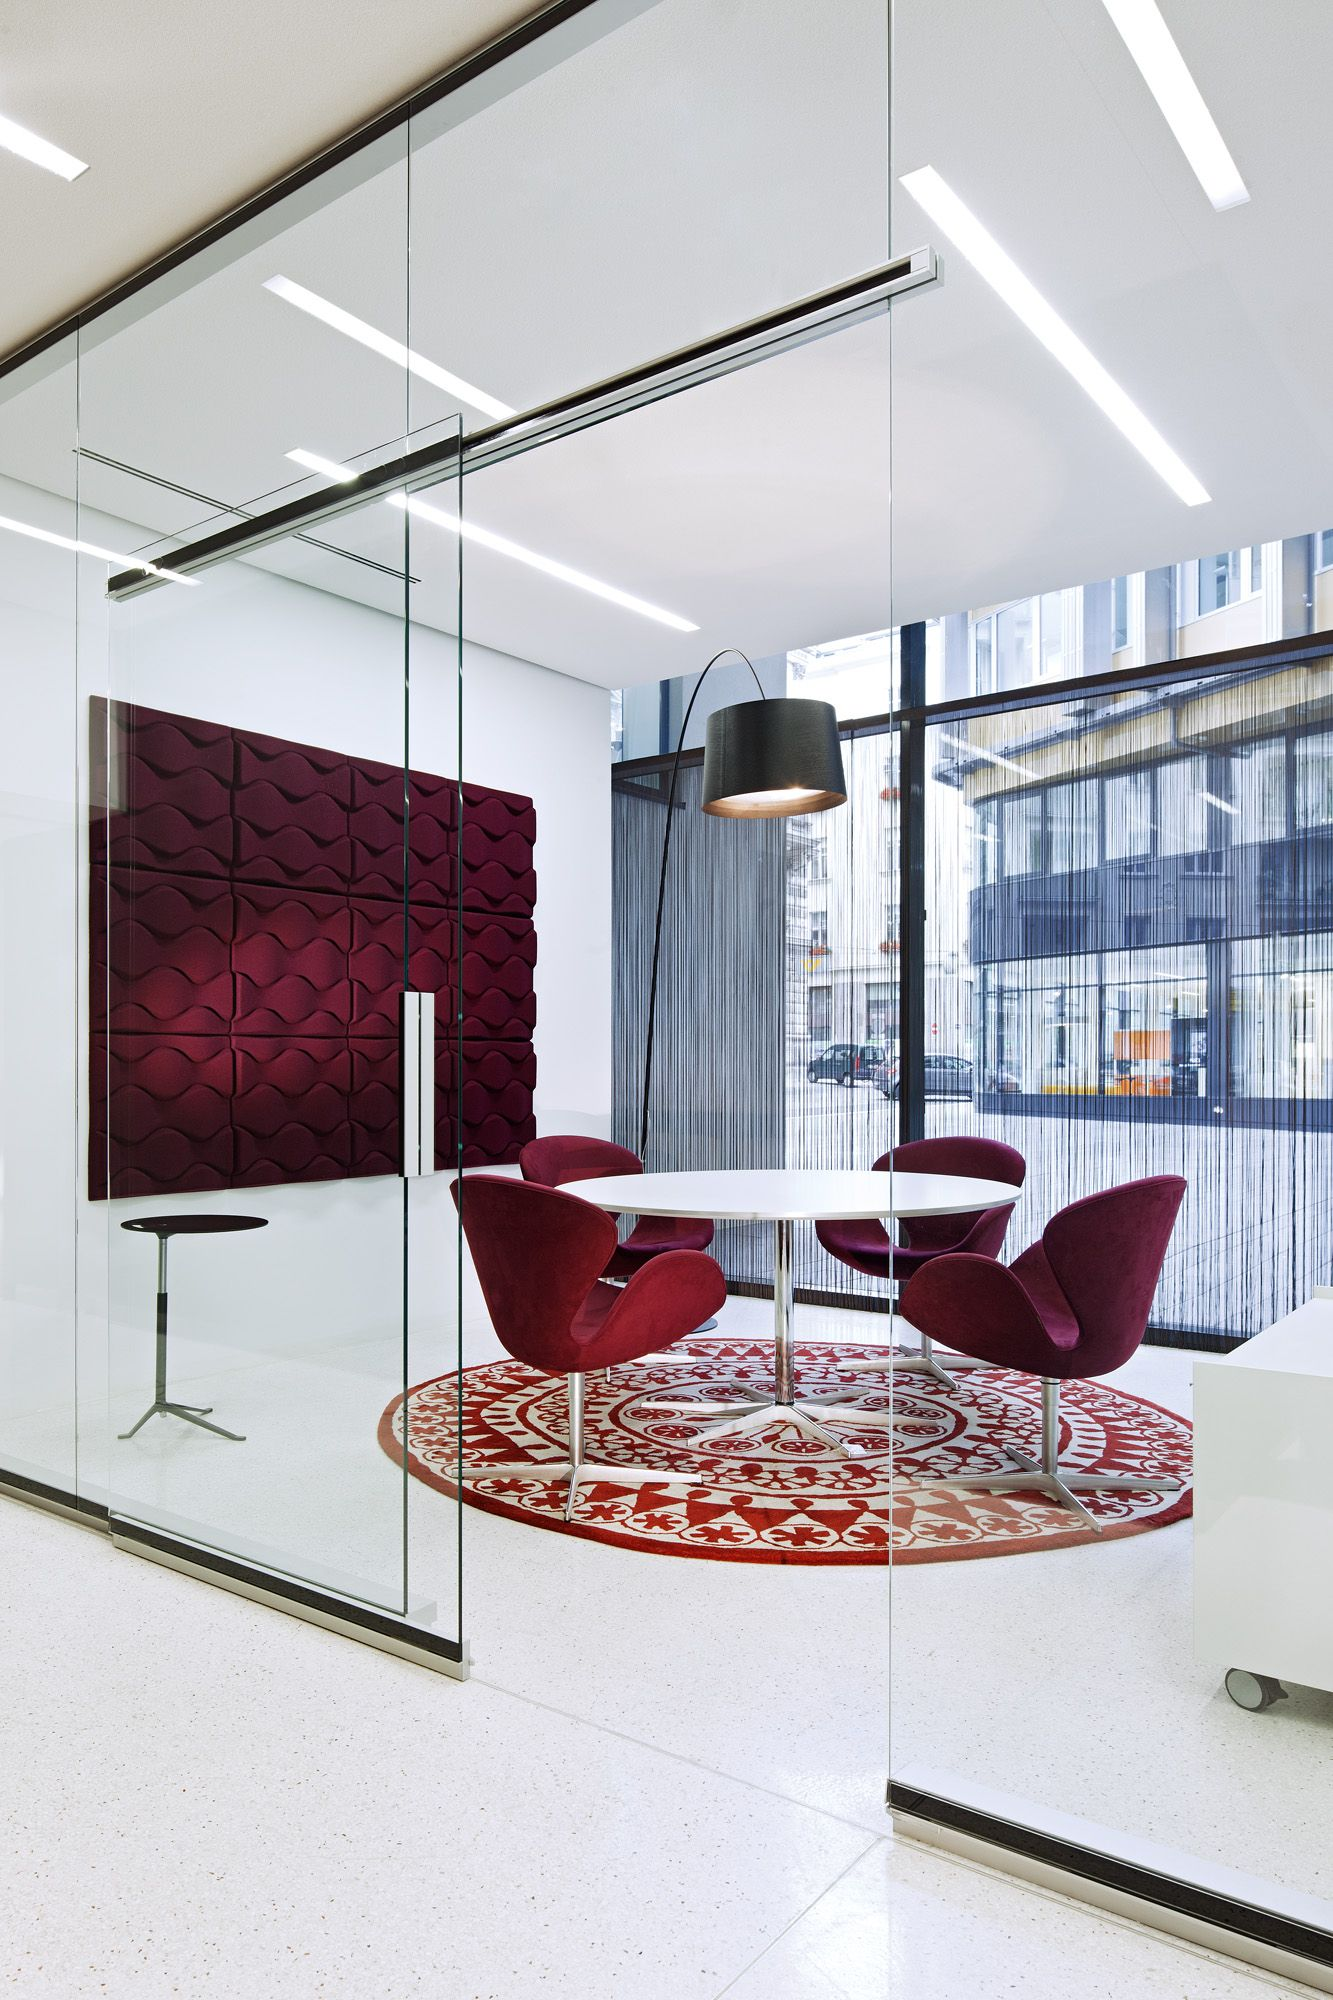 Conference Room Interior Design: Modern Office Meeting Space Breaking Away From The